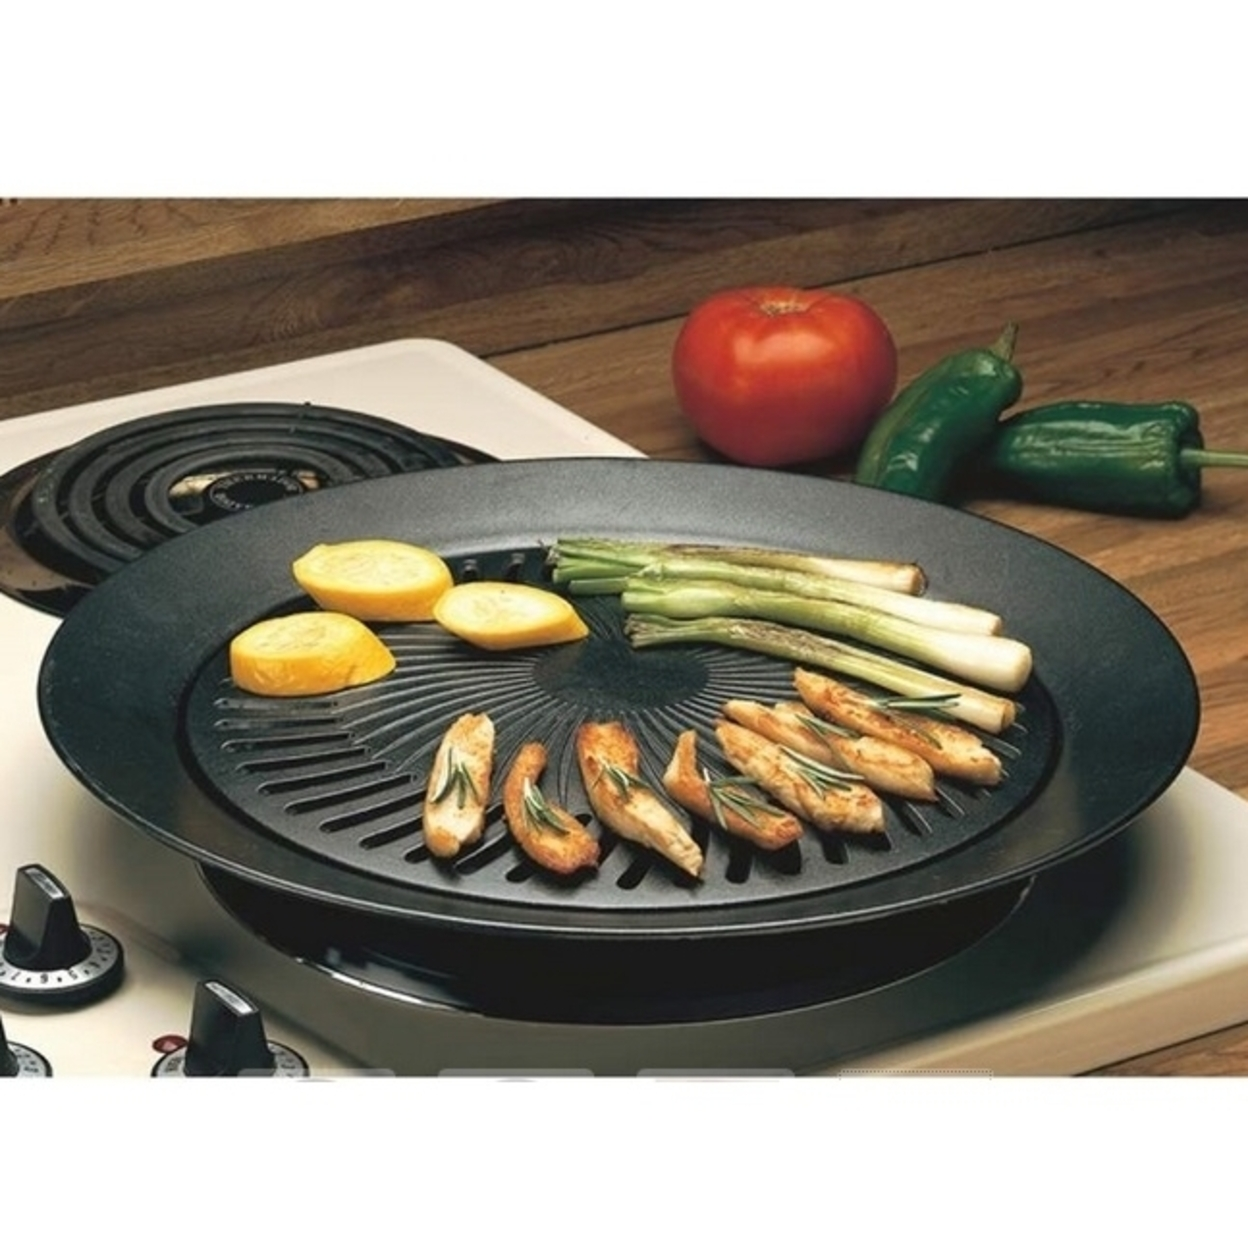 Smokeless Indoor Stovetop Barbeque Grill 557d0e6f4d3d6f3b748b5fcf